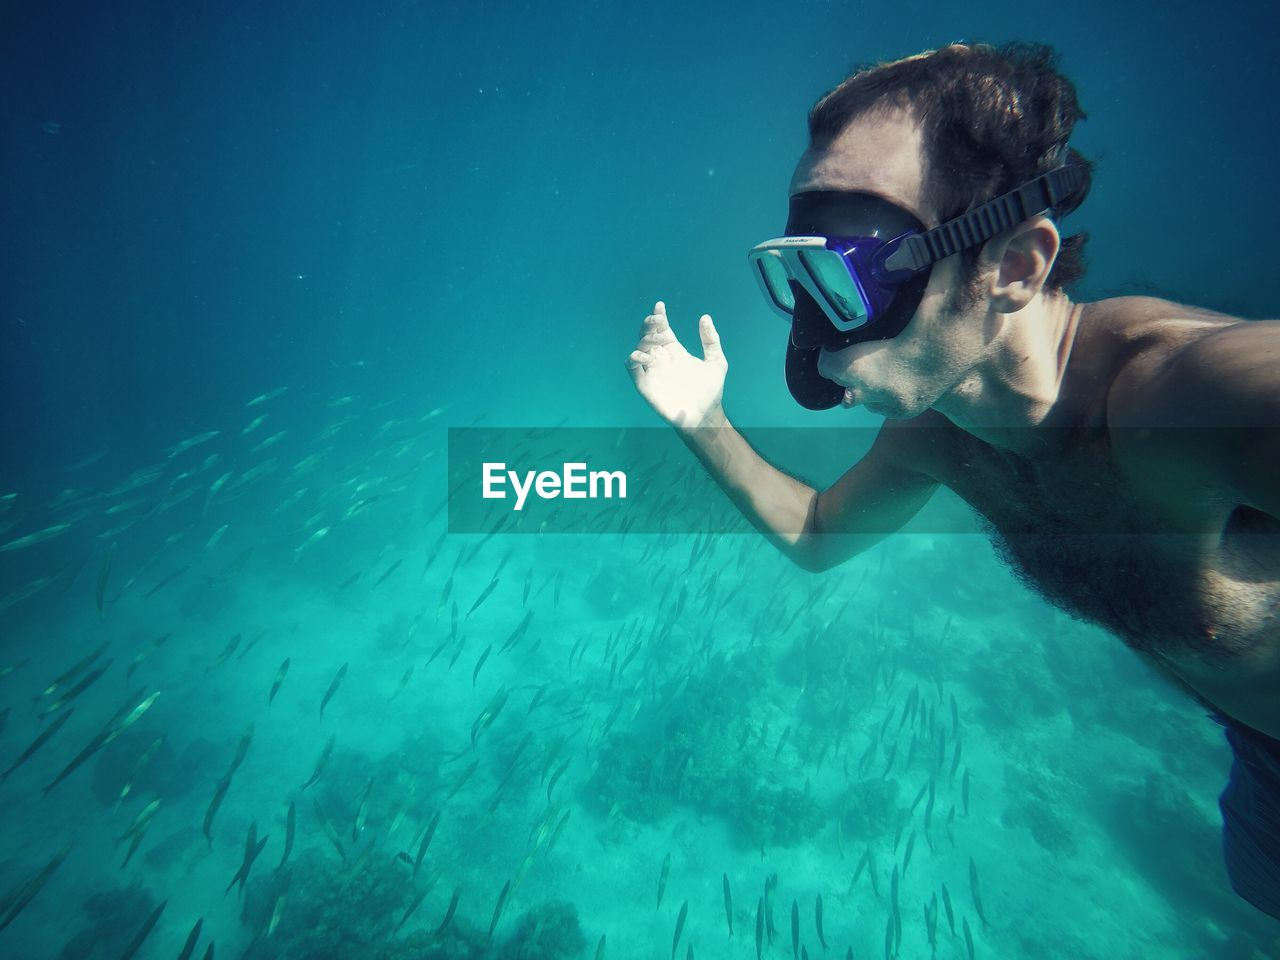 underwater, swimming, undersea, one person, leisure activity, sea, water, real people, lifestyles, blue, young adult, shirtless, snorkeling, young men, vacations, adventure, nature, scuba diving, beauty in nature, sea life, day, animal themes, outdoors, people